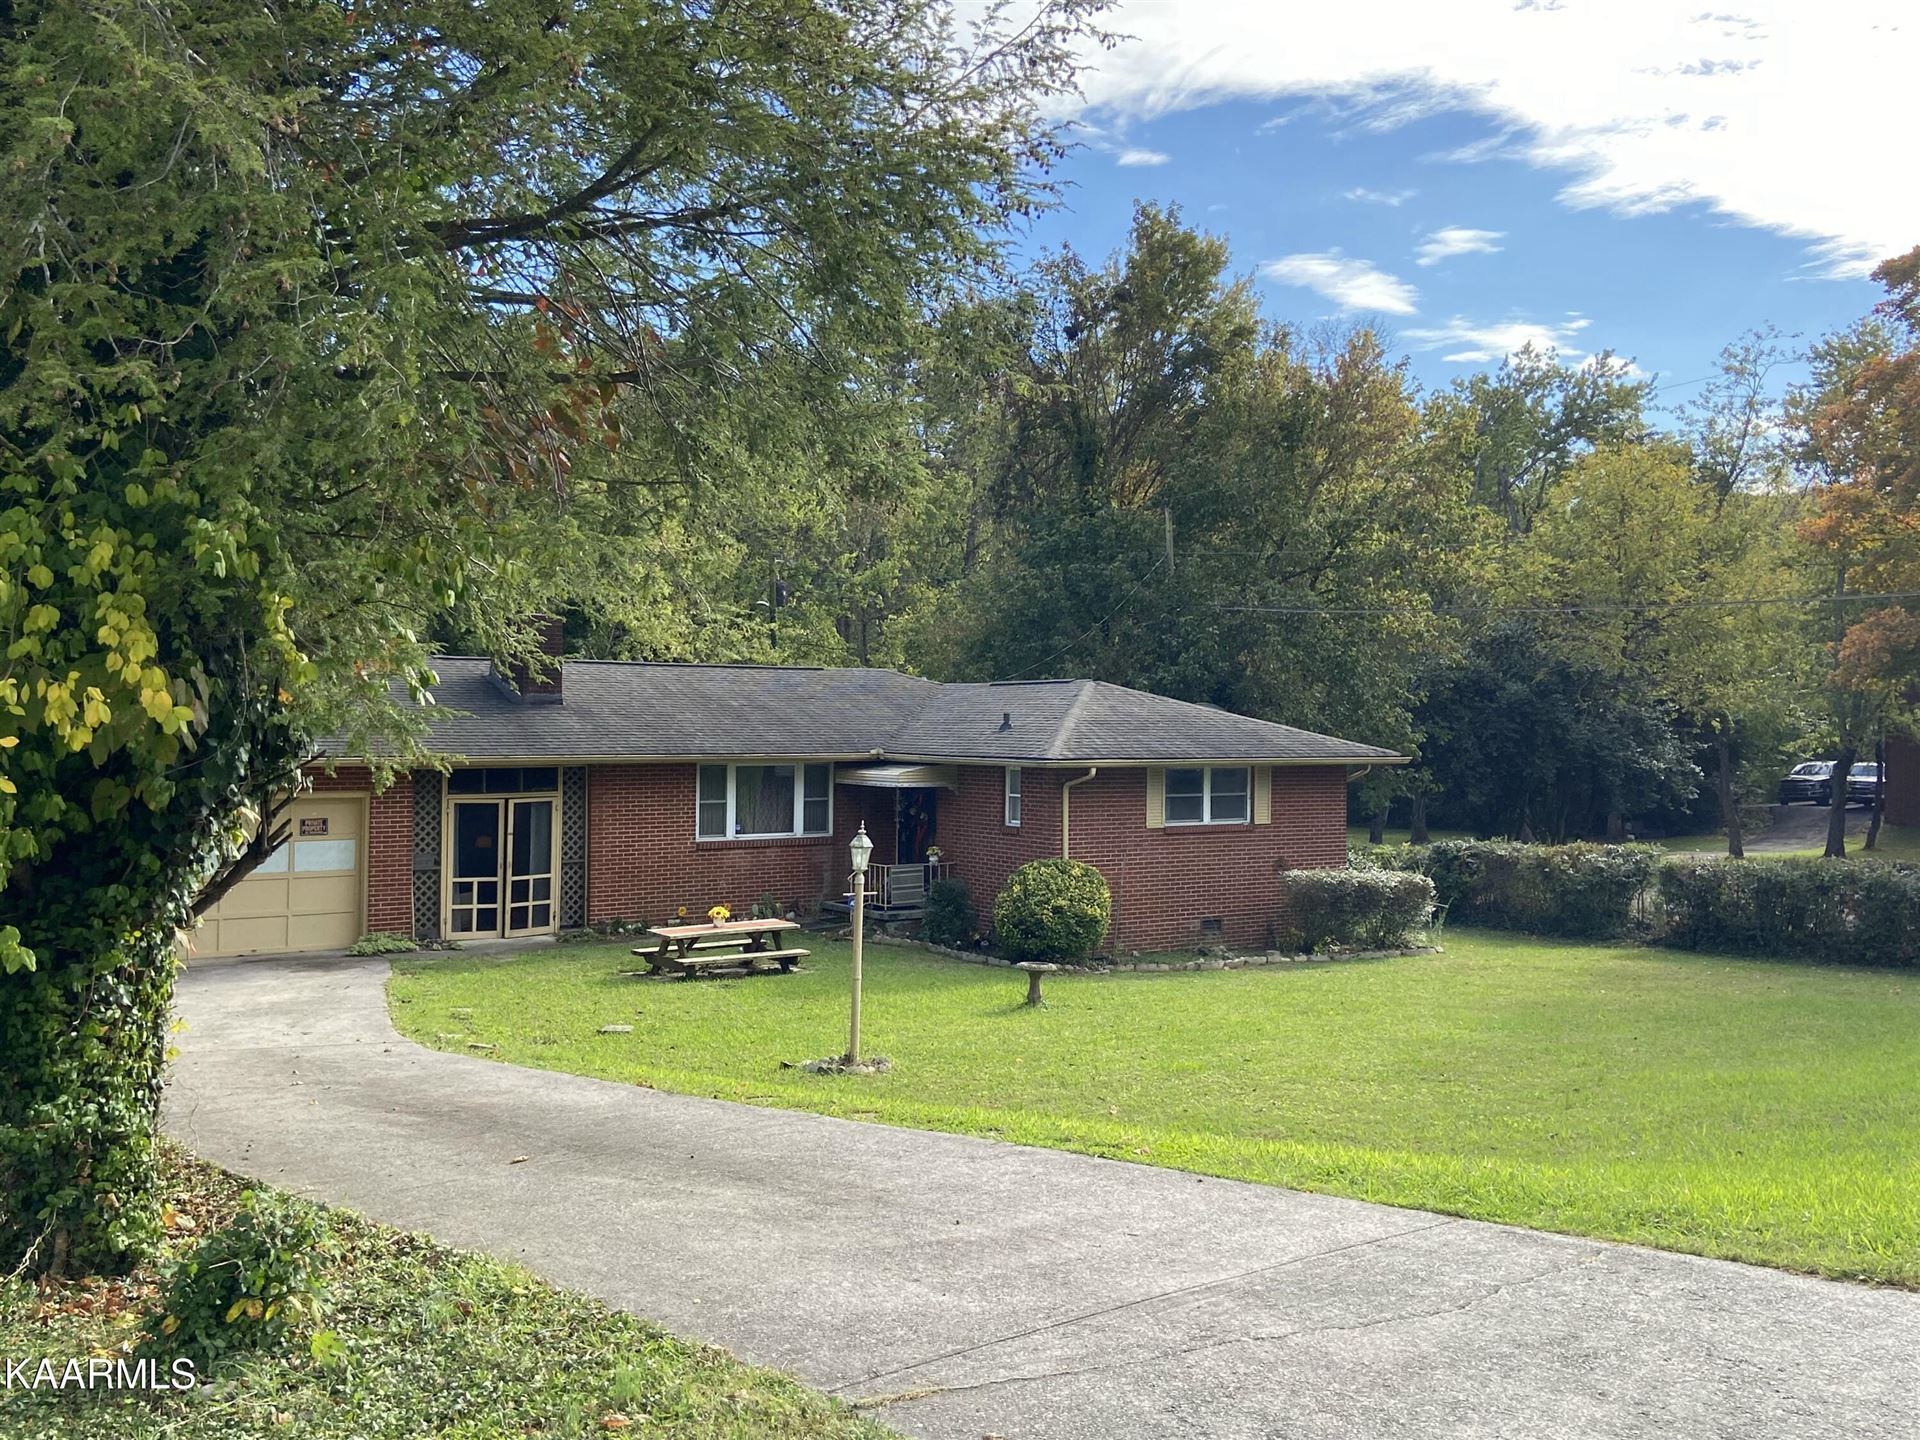 Photo of 5106 Asheville Hwy, Knoxville, TN 37914 (MLS # 1171813)